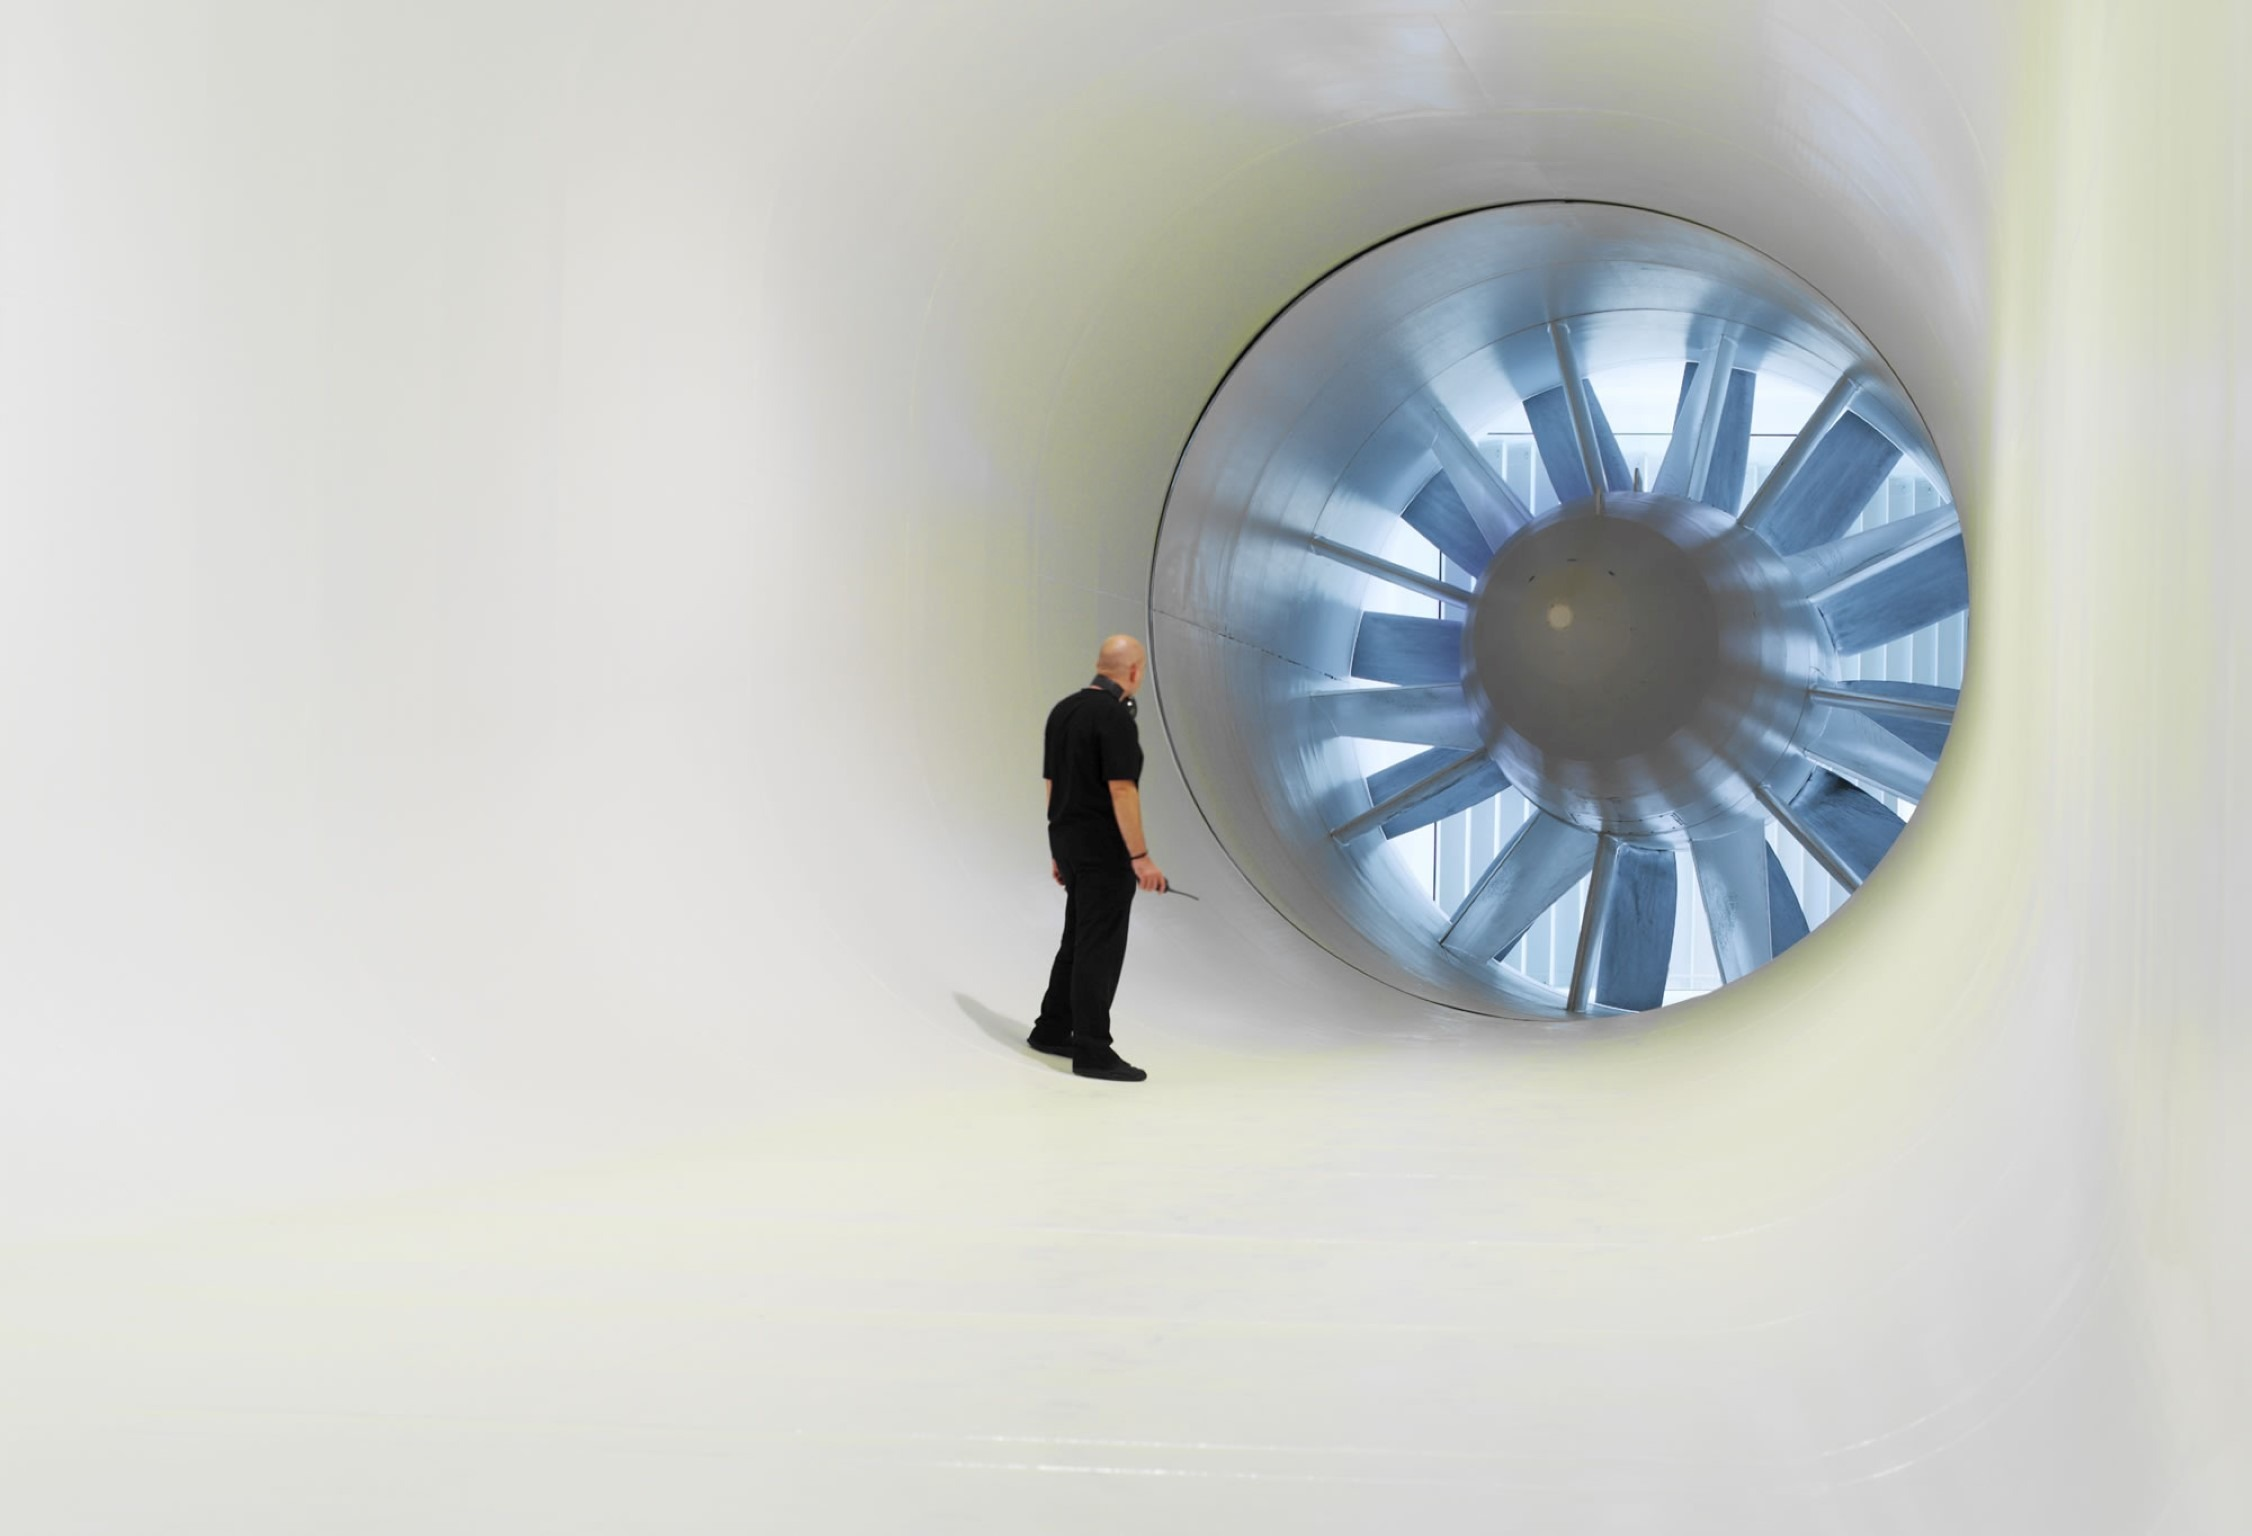 F1 discussing wind tunnel ban from 2030